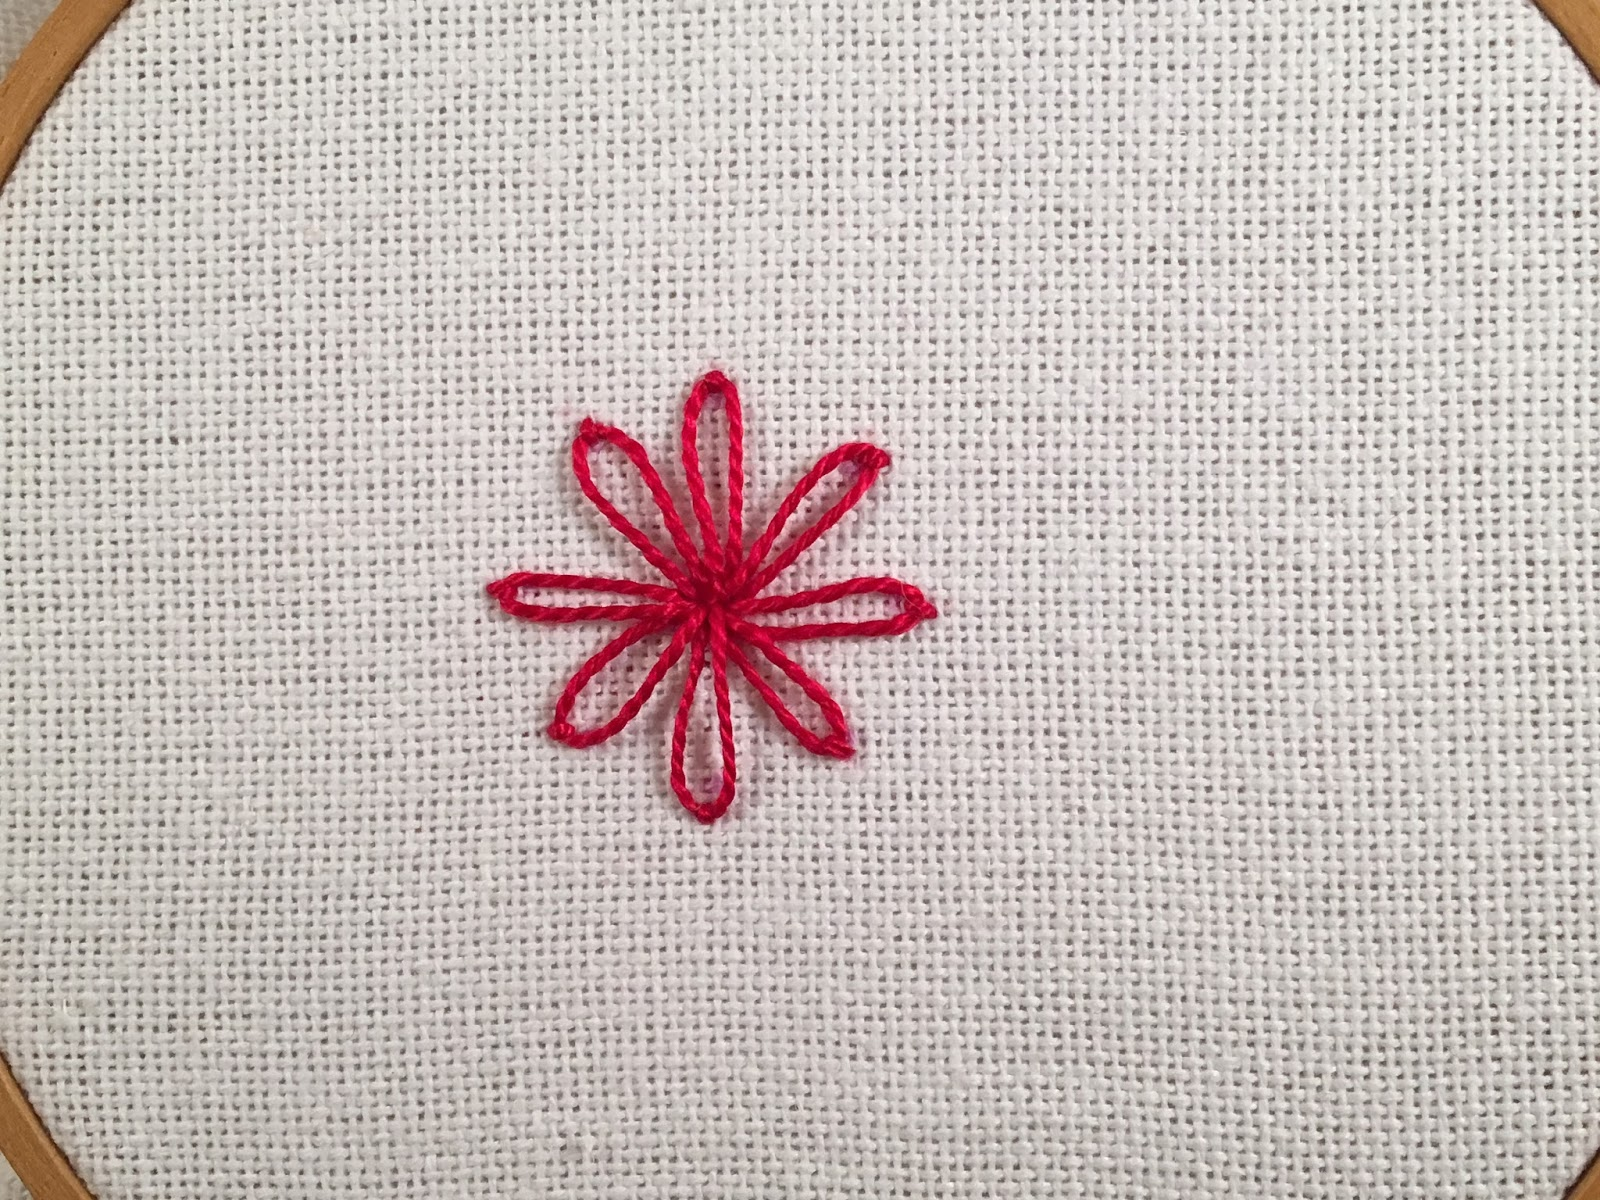 Whipped Lazy Daisy stitch, a tutorial by Michelle for Mooshiestitch Monday on Feeling Stitchy